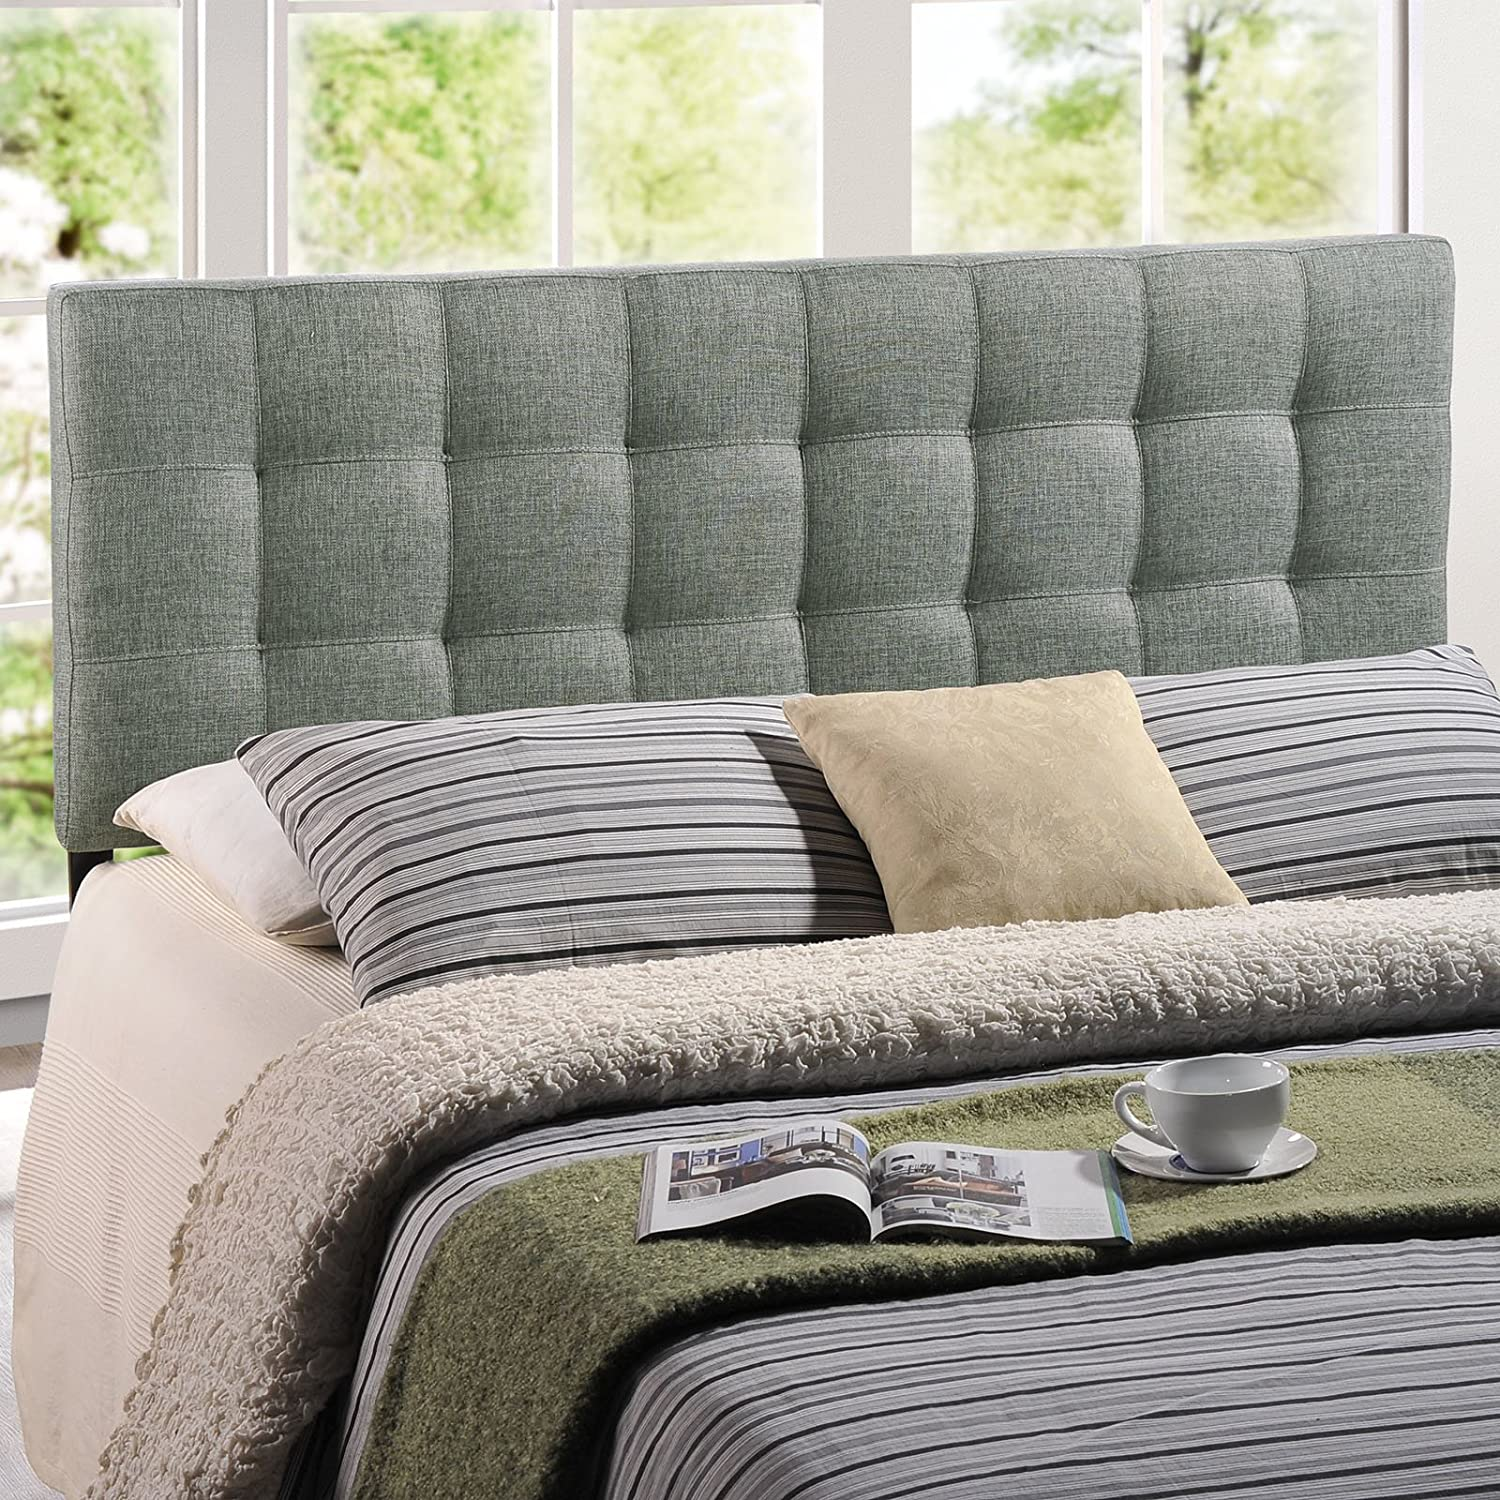 Amazon.com - Modway Lily Upholstered Tufted Fabric Headboard Queen Size In  Gray - - Amazon.com - Modway Lily Upholstered Tufted Fabric Headboard Queen